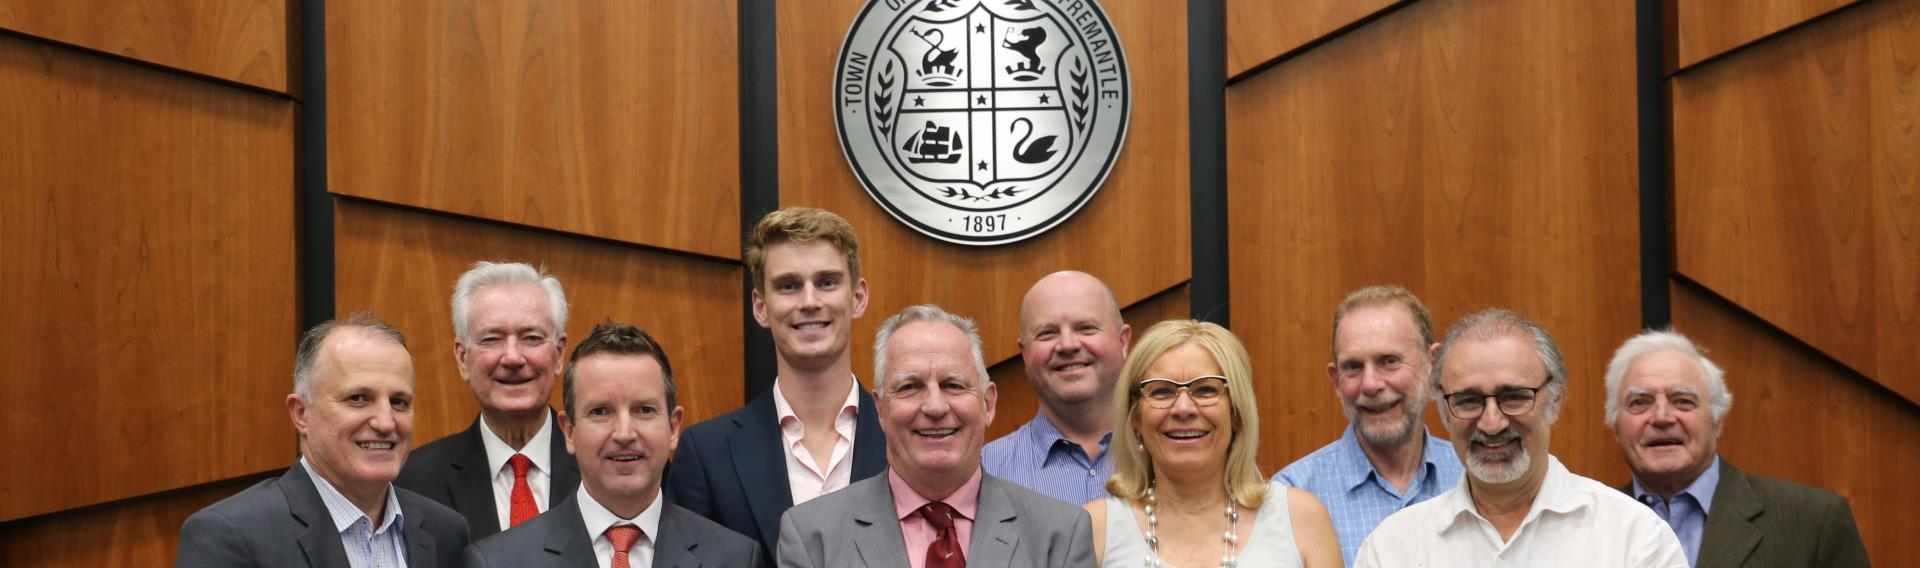 Banner - Mayor and Councillors » Town of East Fremantle